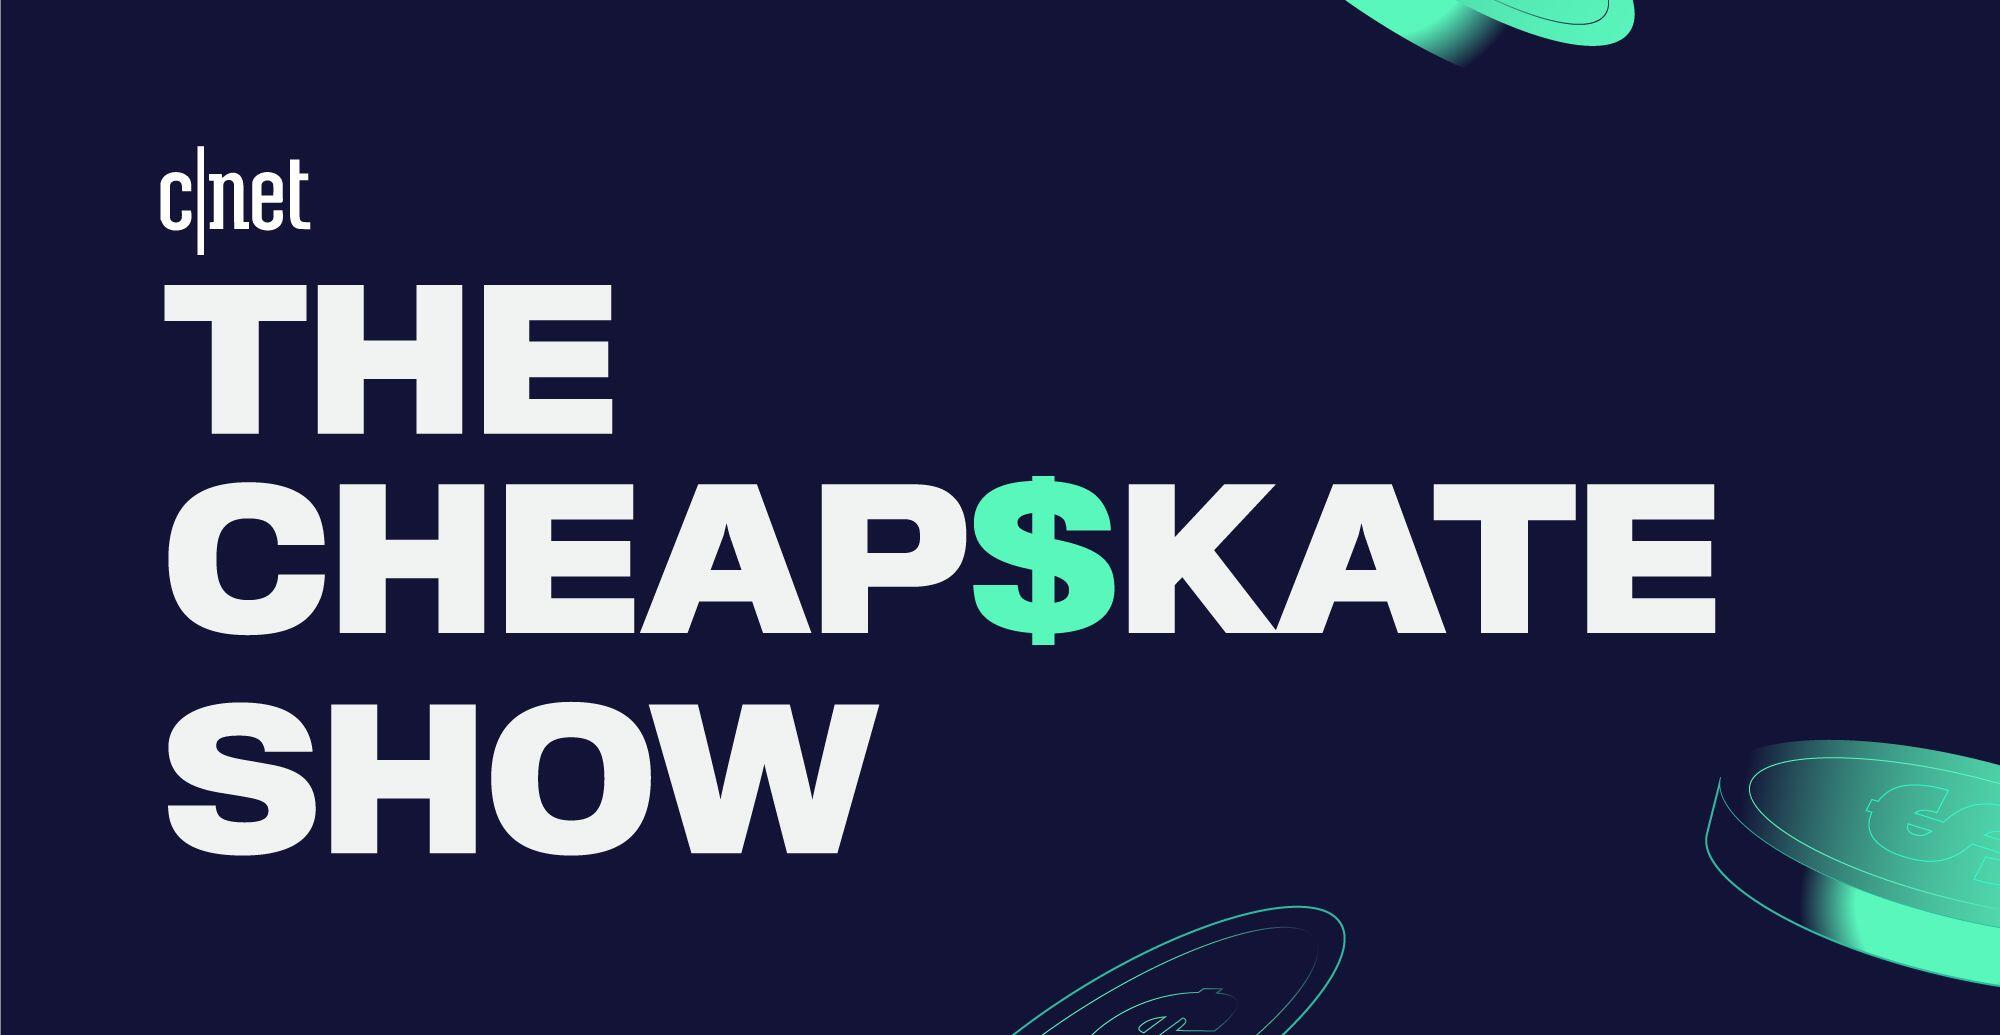 The Cheapskate Show podcast: Never, ever pay full price for these tech items